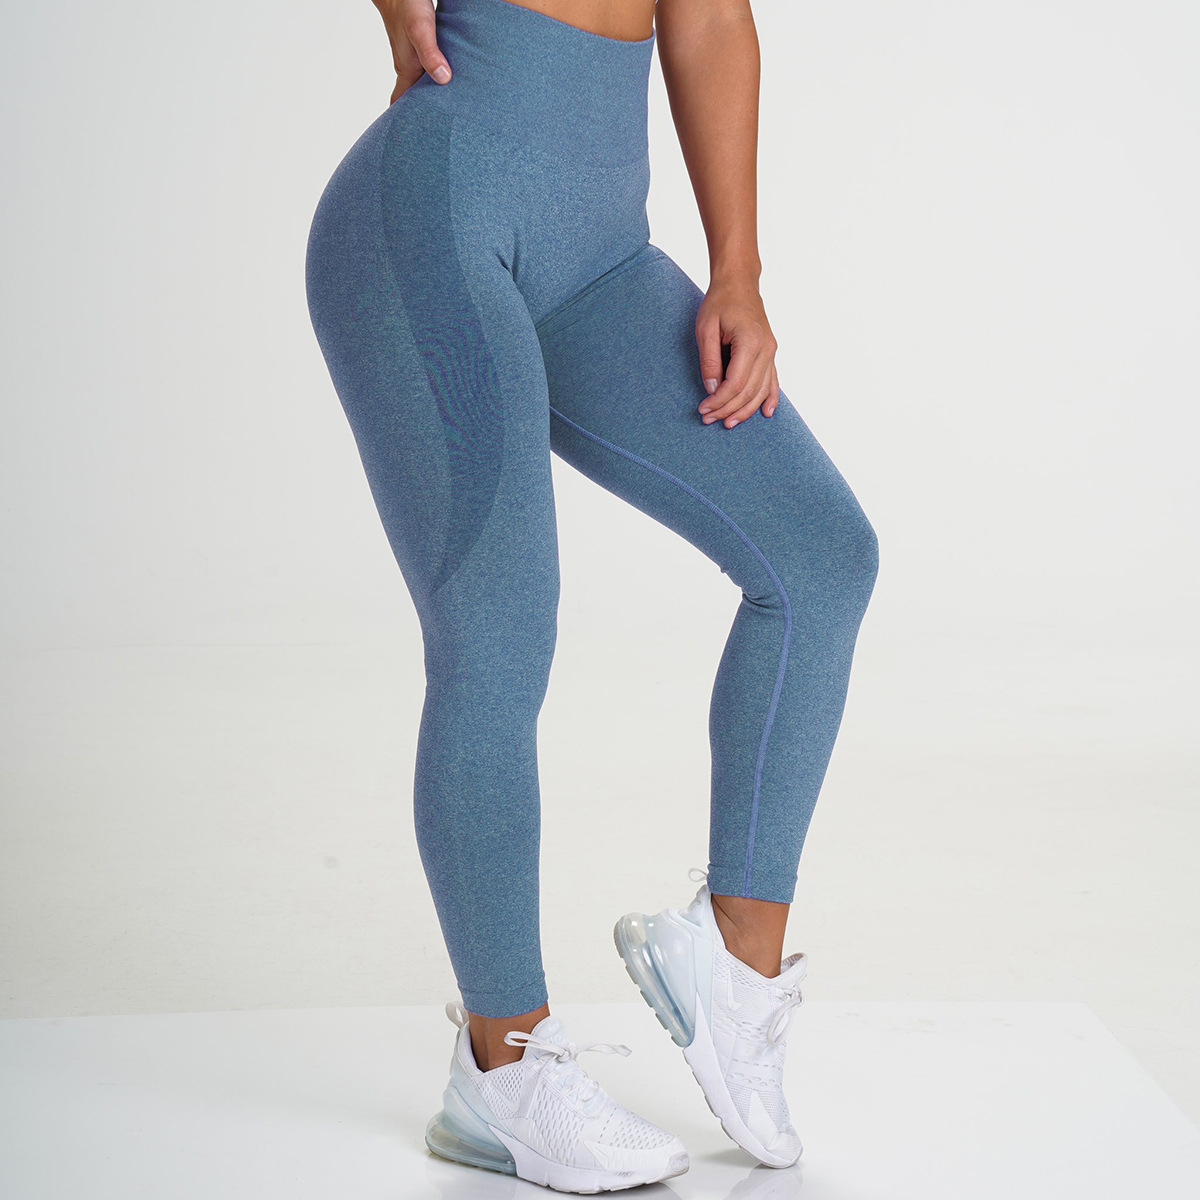 Women Gym Yoga Seamless Pants Hips Push Up Run Sports Stretchy High Waist Athletic Fitness Leggings Lifting Activewear Pants